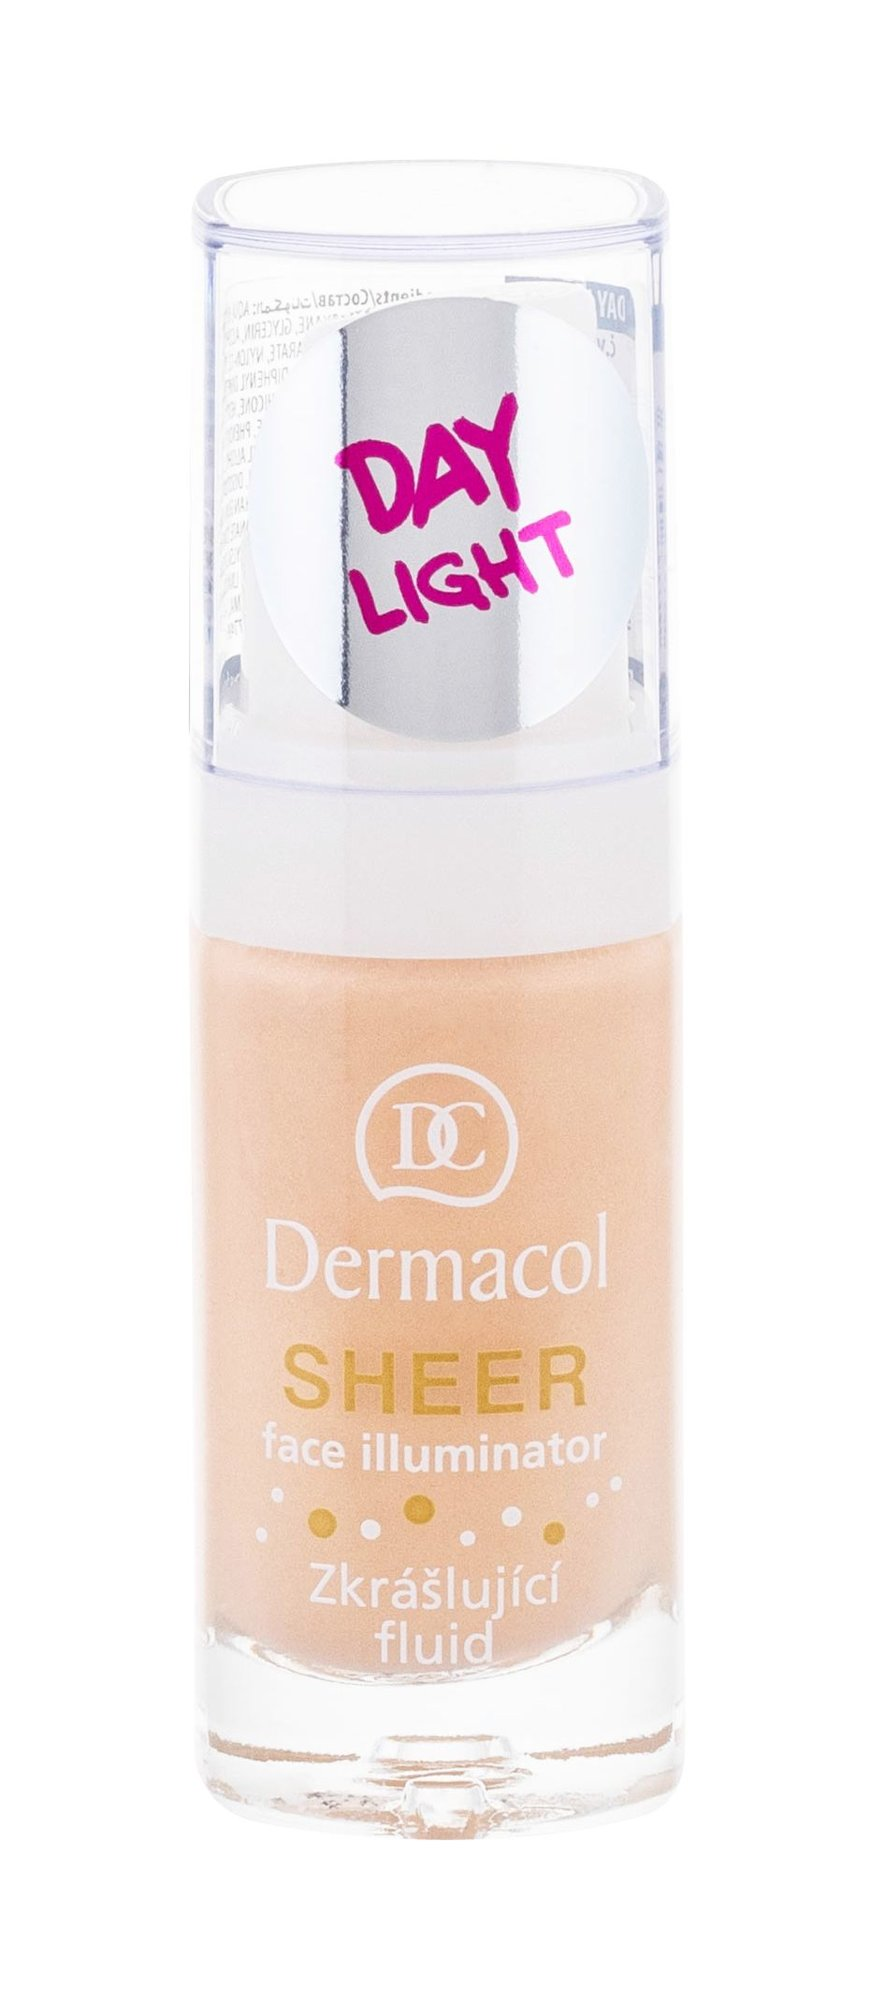 Dermacol Sheer Cosmetic 15ml day light